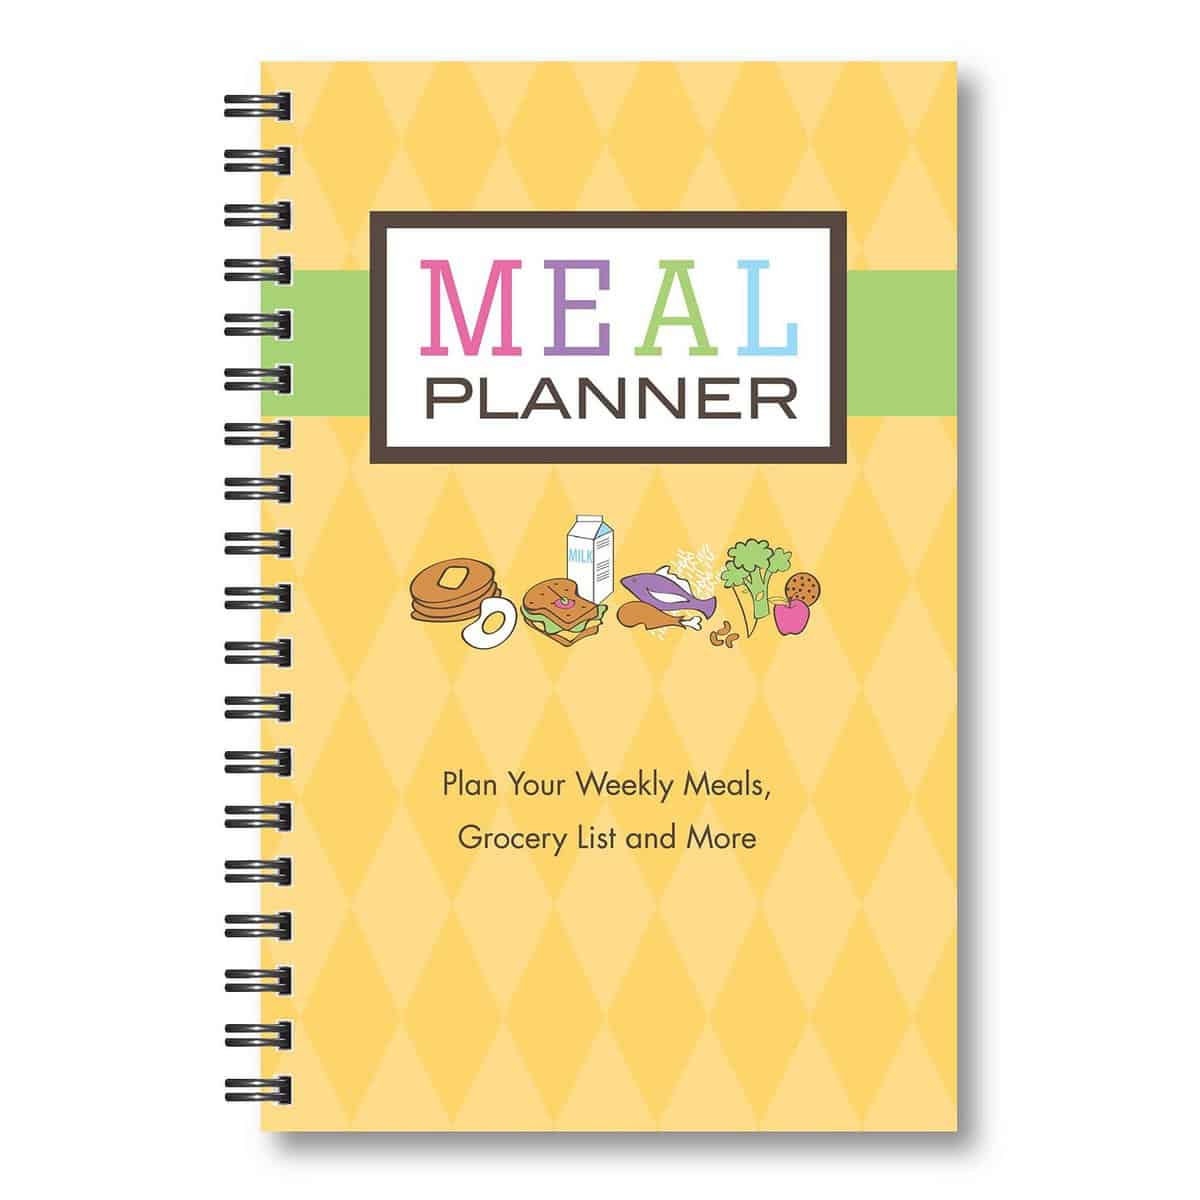 Meal Planner by Kahootie Co.